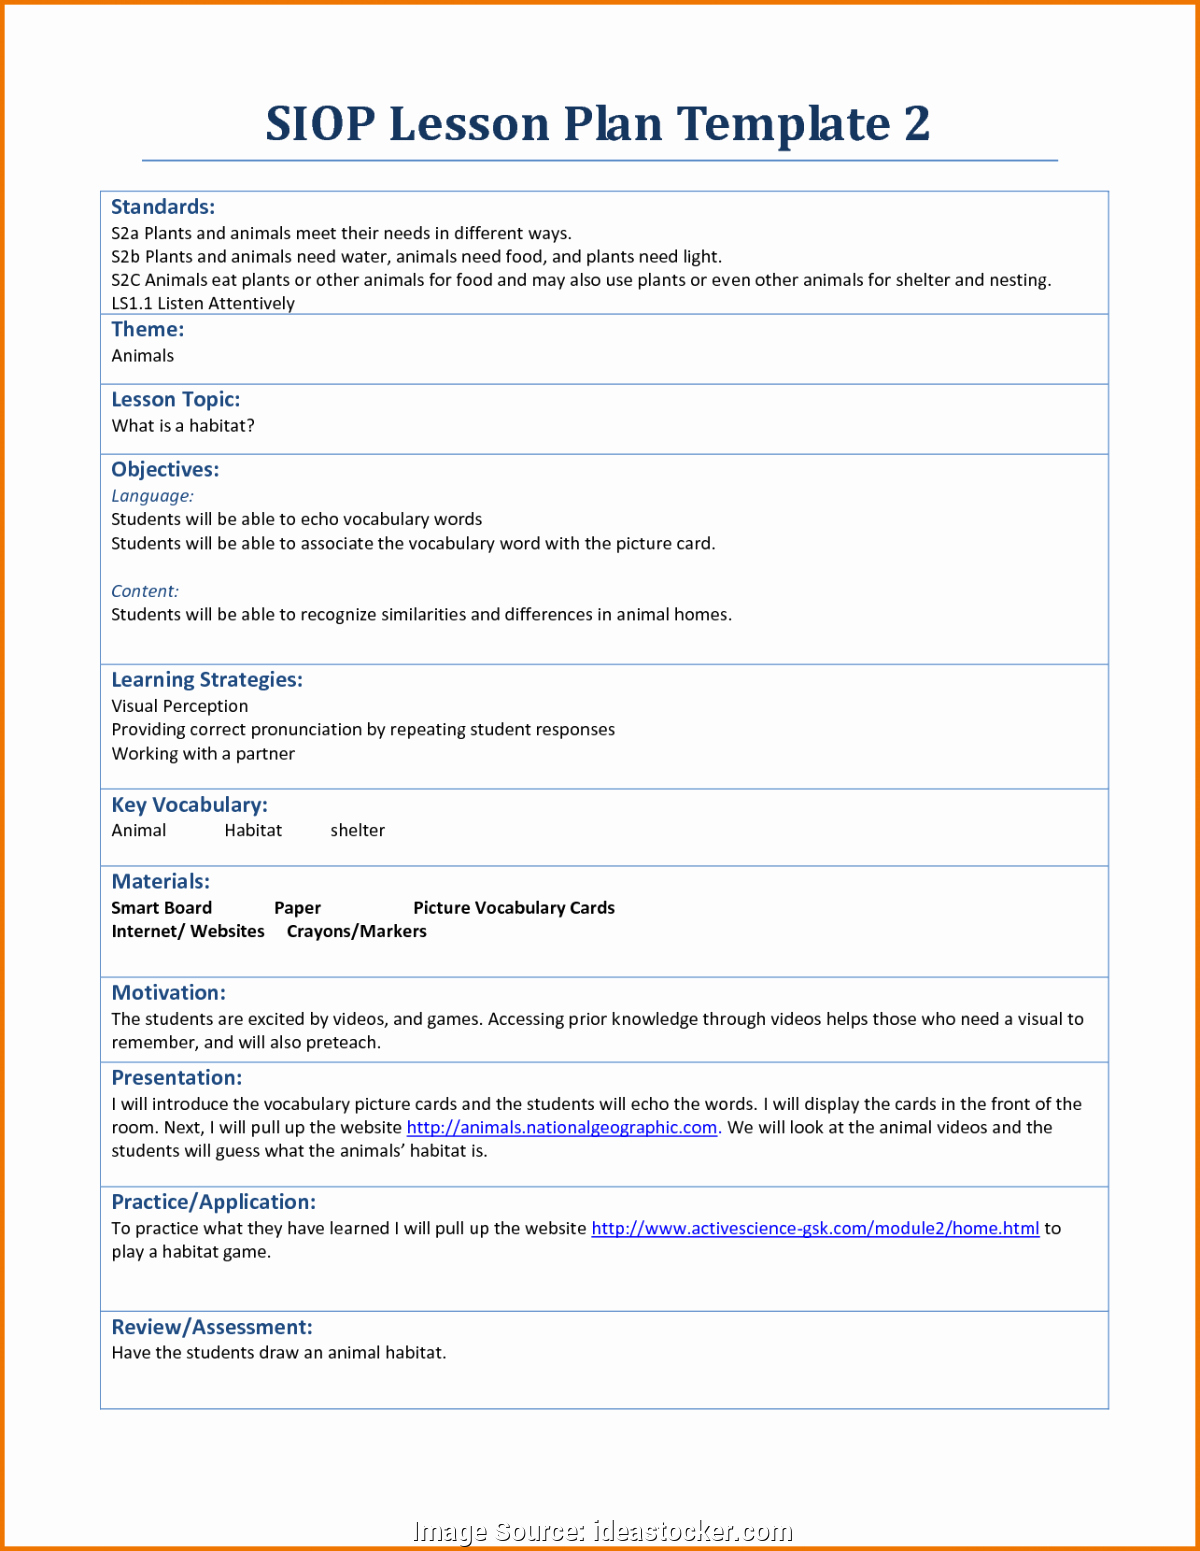 Siop Lesson Plan Template 1 Lovely Simple Siop Lesson Plan 1 Siop Lesson Plan Template